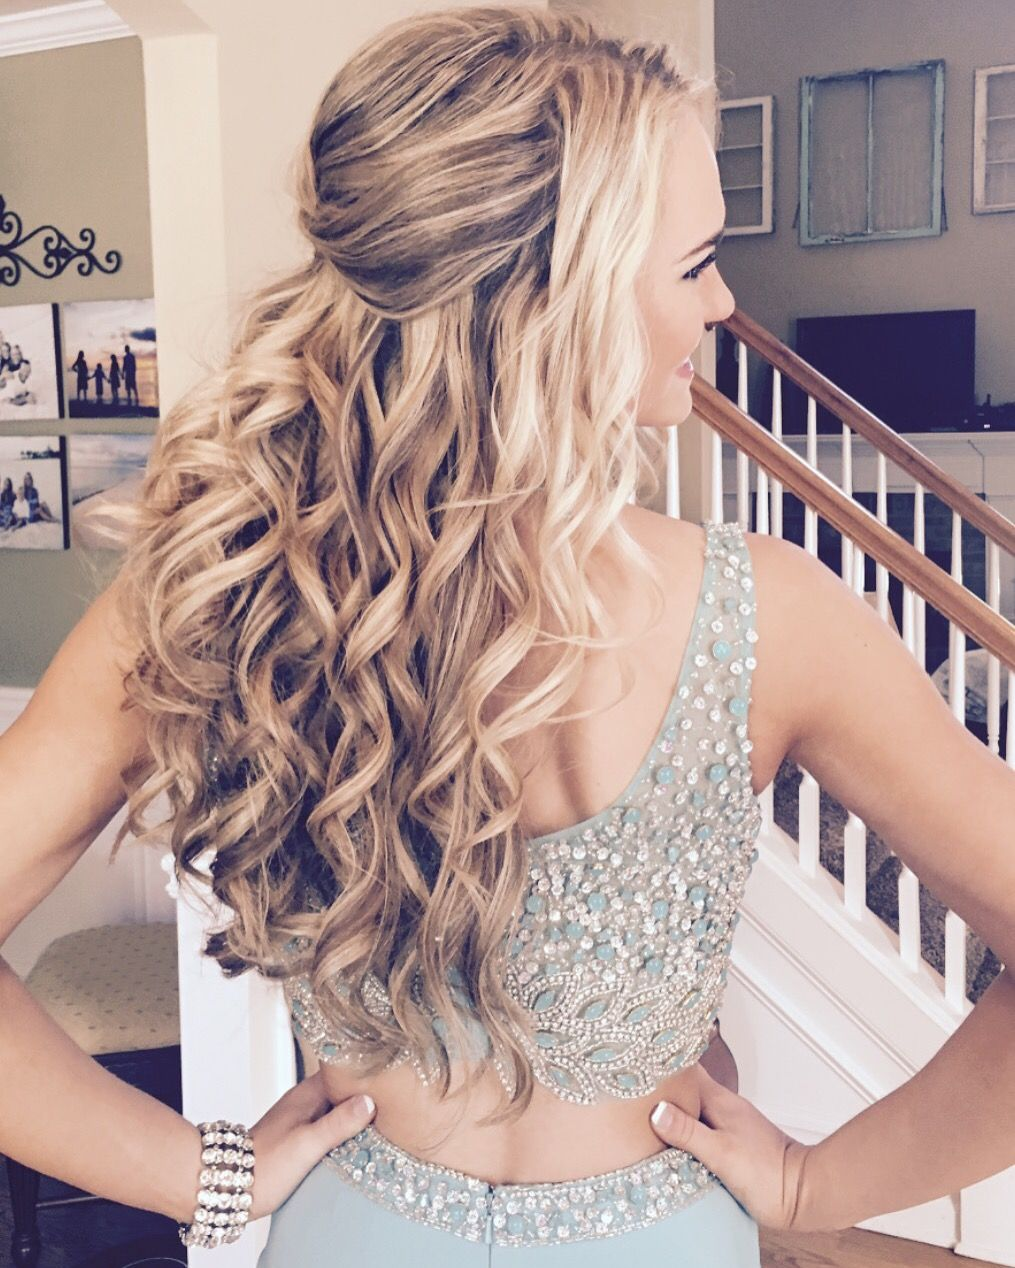 Hairstyles For Formal Dances Perfect Down Do Formal Hair Style By Formalfacescom Down Dos